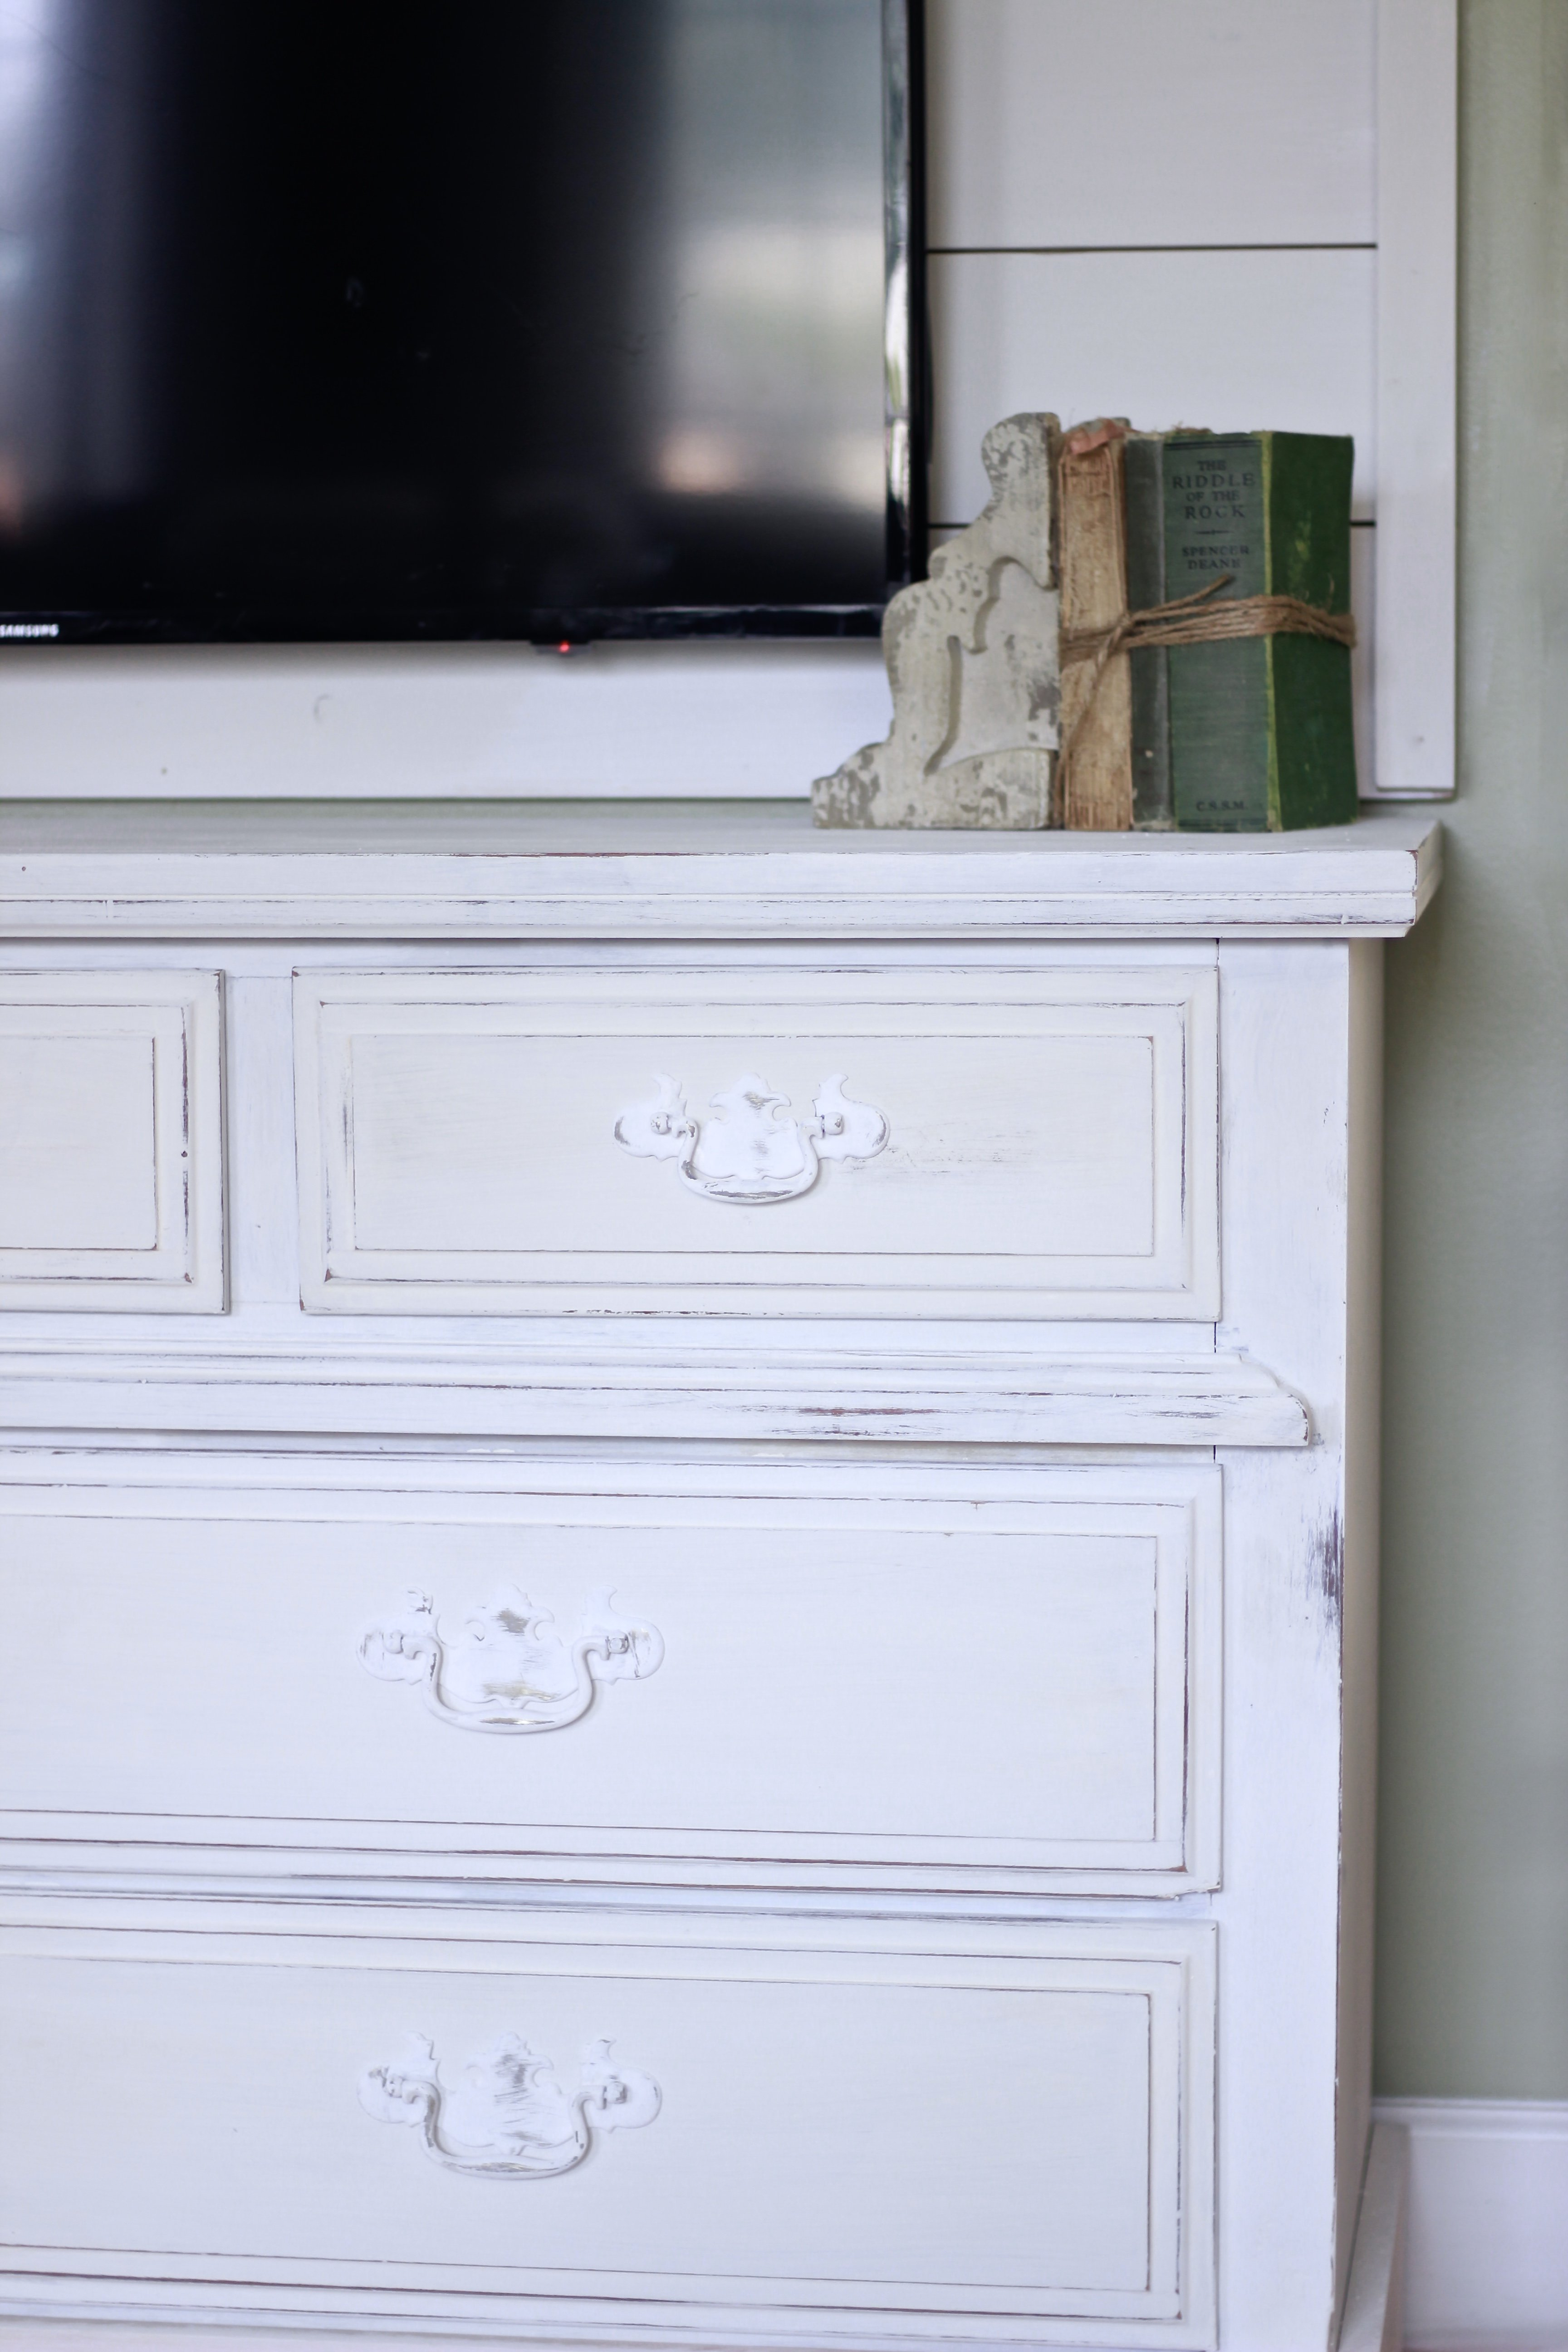 Our Free Dresser We refinished. Easy DIY With Milk Paint, How to Turn an Ugly piece of furniture into a gorgeous new piece. Refinished furniture, DIY Furniture, Rustoleum Chalk Paint, Milk Paint.